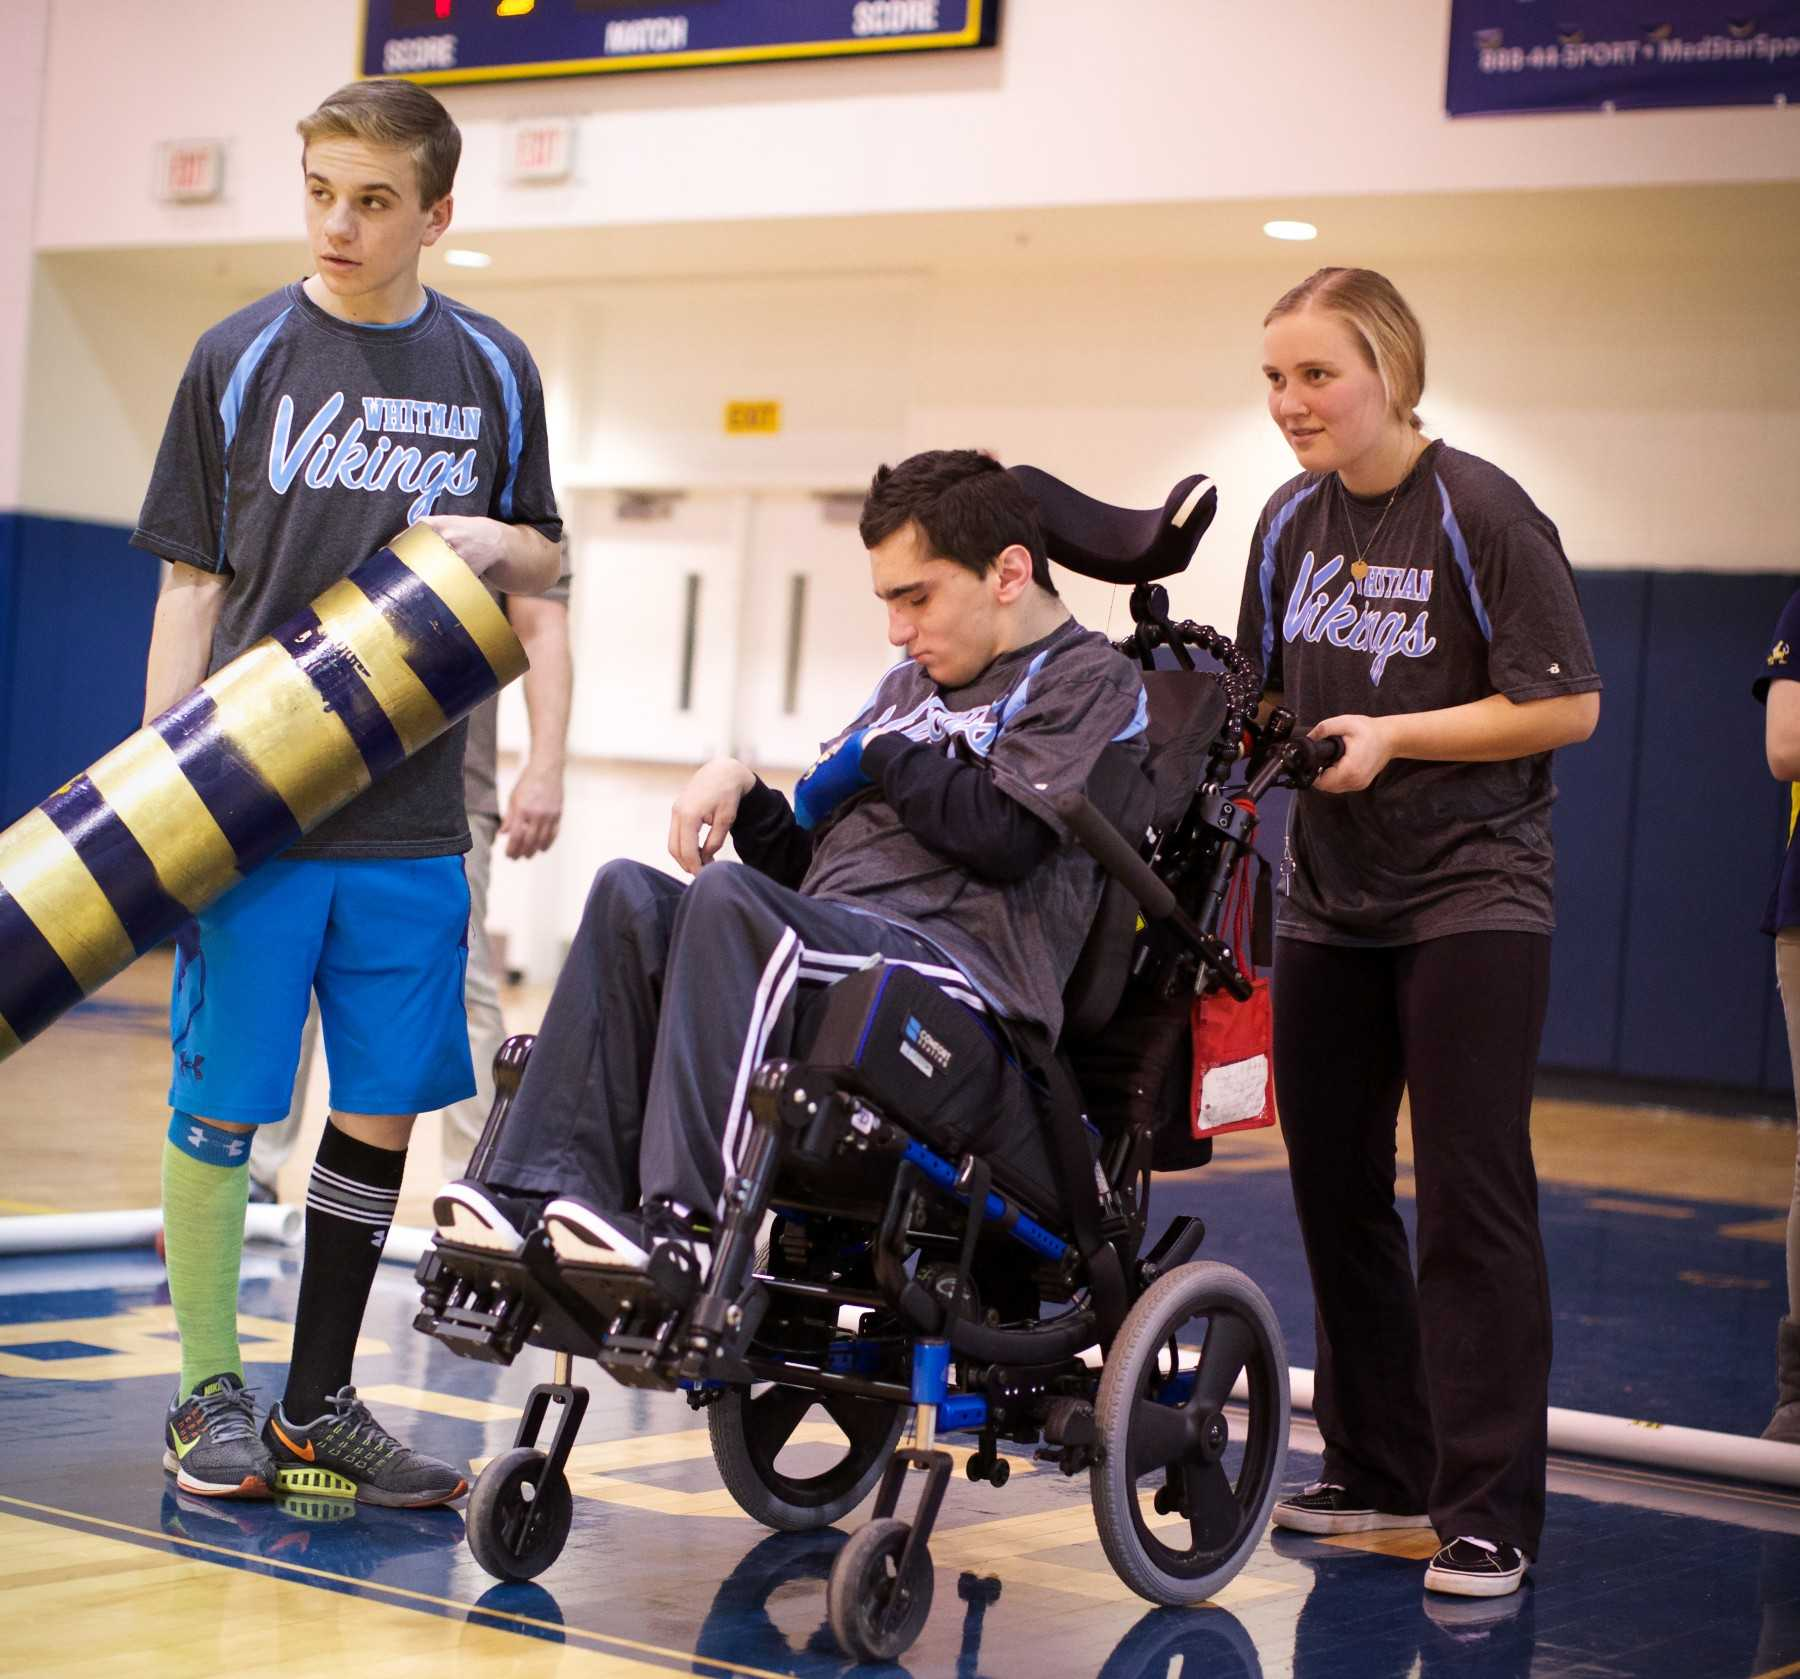 The Whitman Bocce program provides athletic experience for students with disabilities. Photo by Sophia Knappertz.